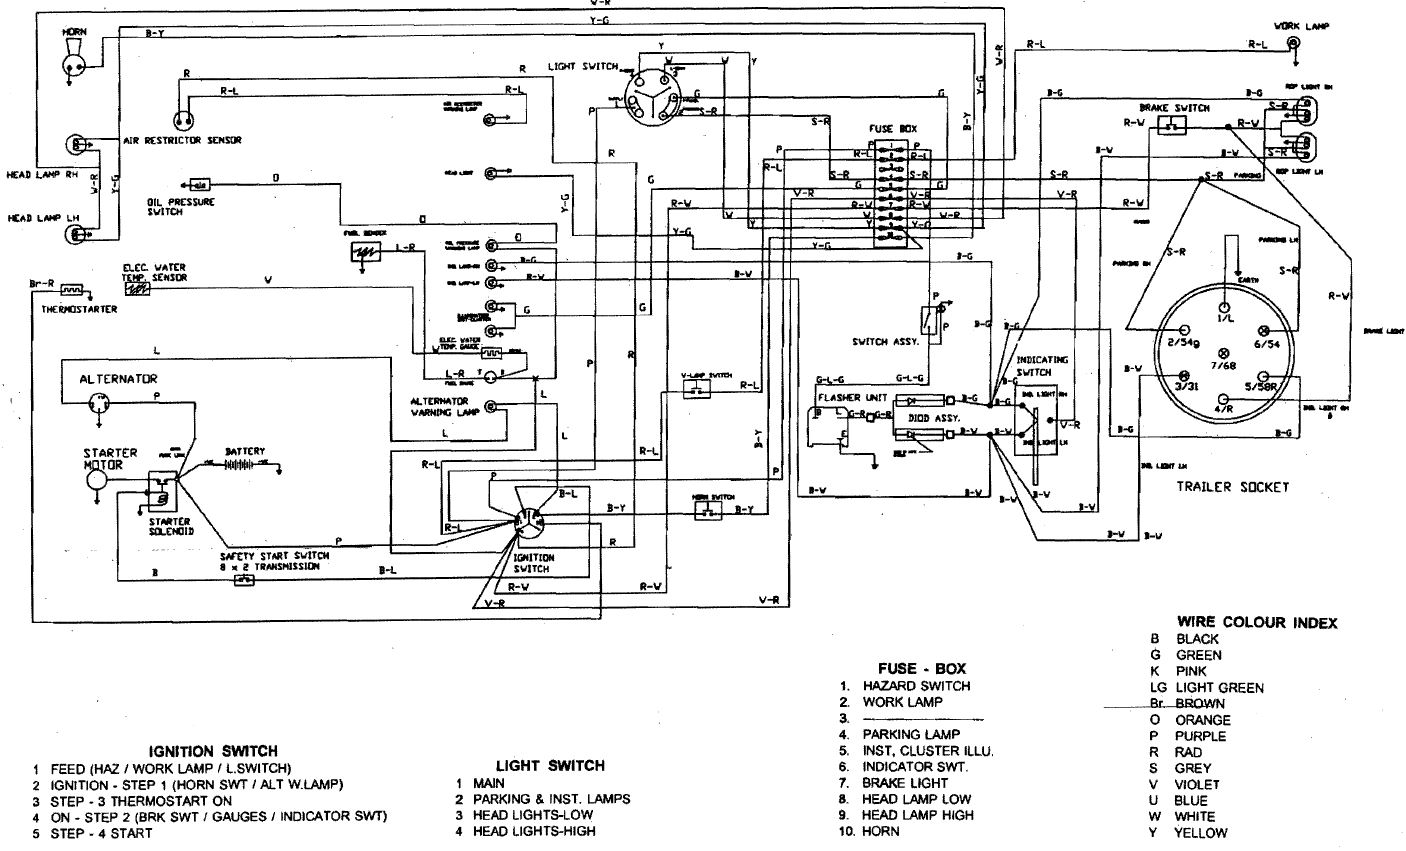 hight resolution of ignition switch wiring diagram rh tractorbynet com ford 4610 tractor ford 7000 tractor